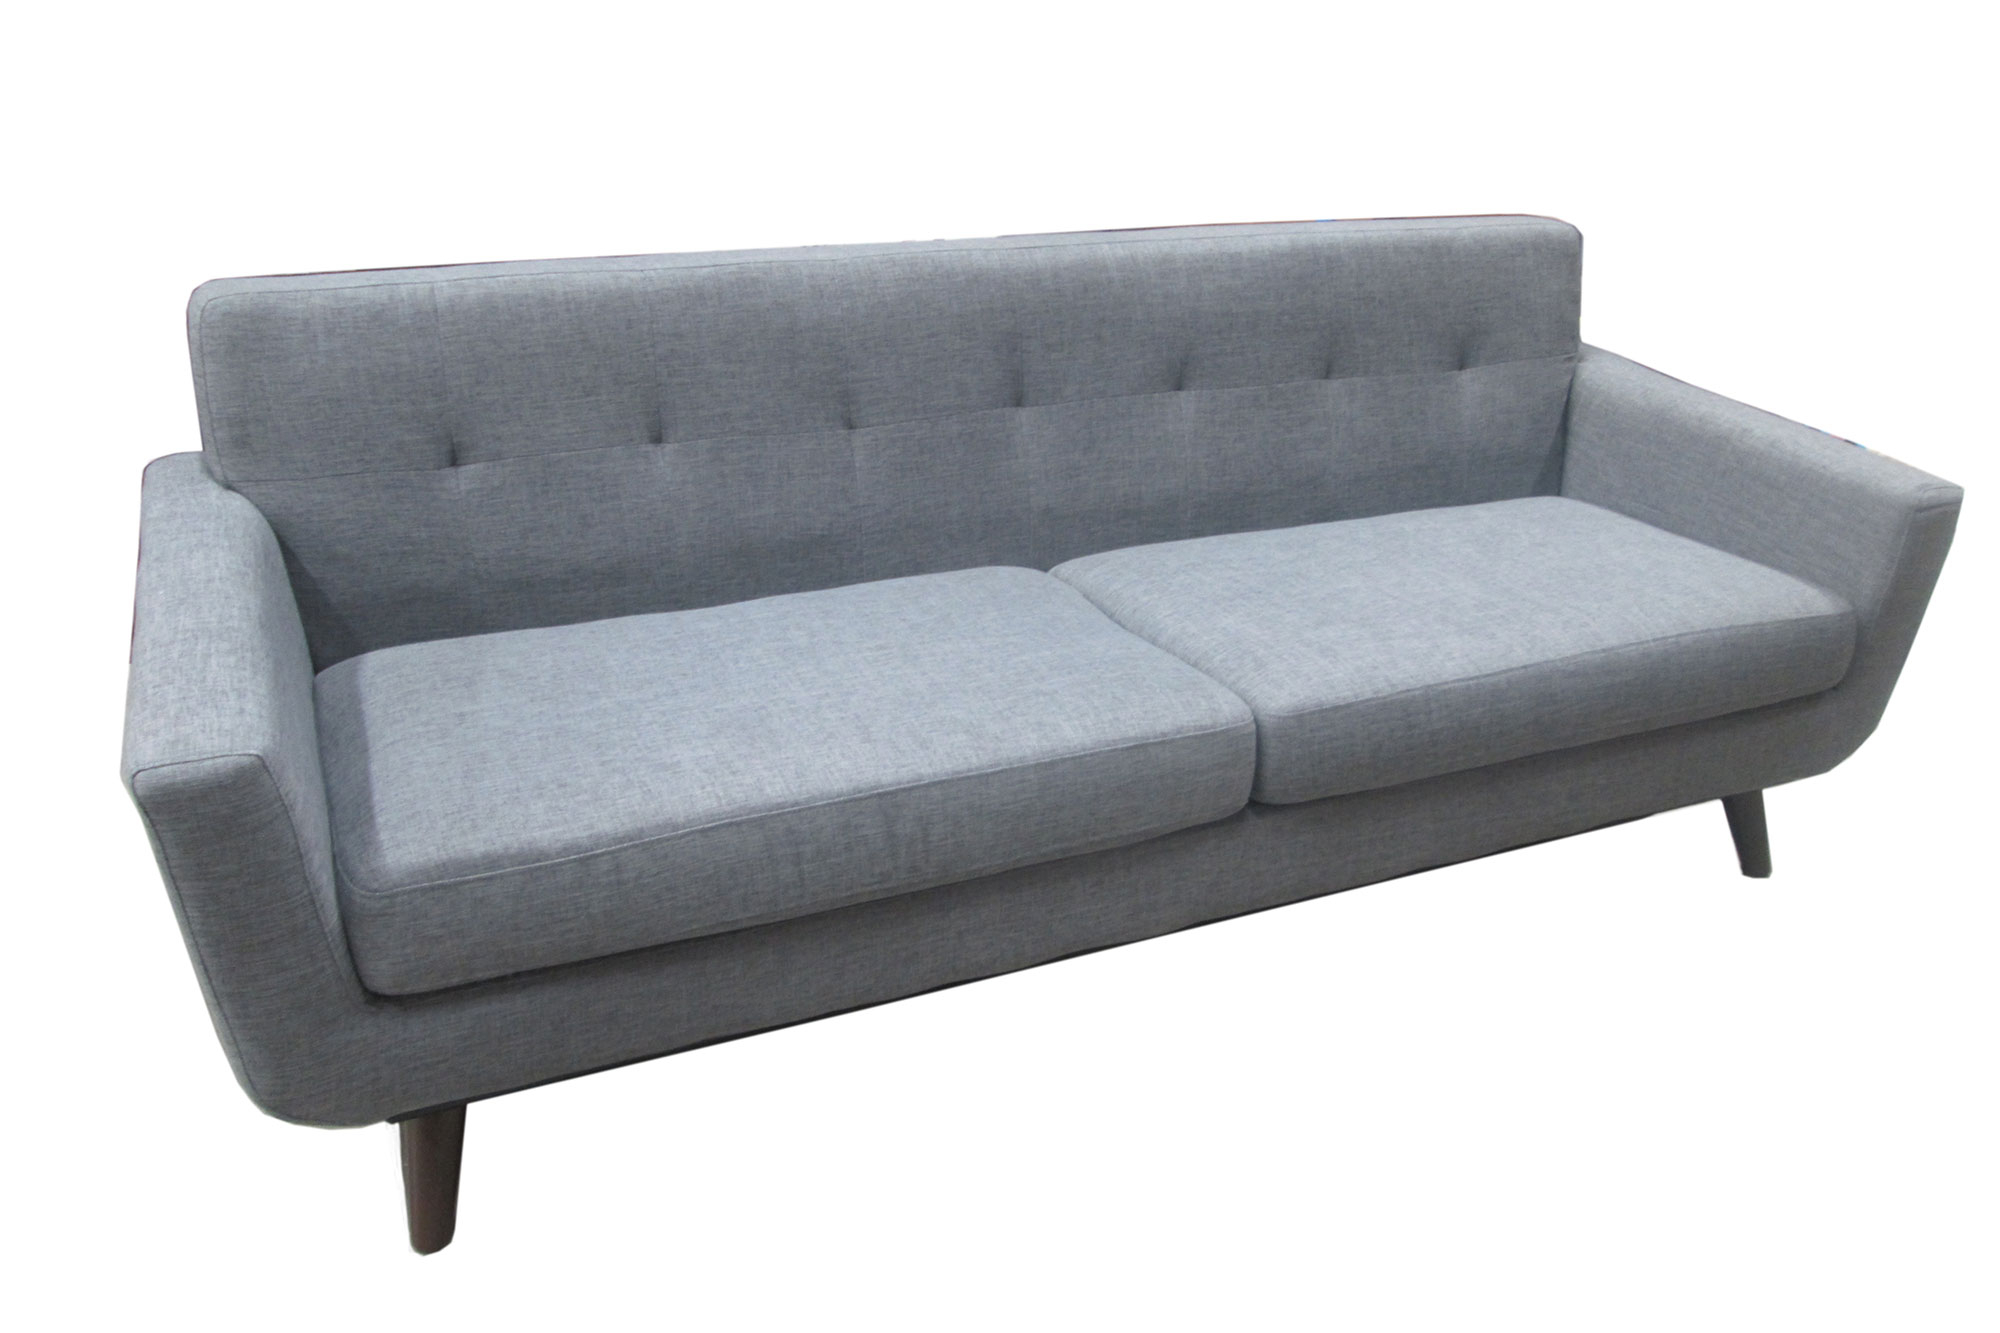 Furniture Iso Mid Century Milo Sofa Grey – Metroconnections Intended For Milo Sofa Chairs (View 13 of 20)